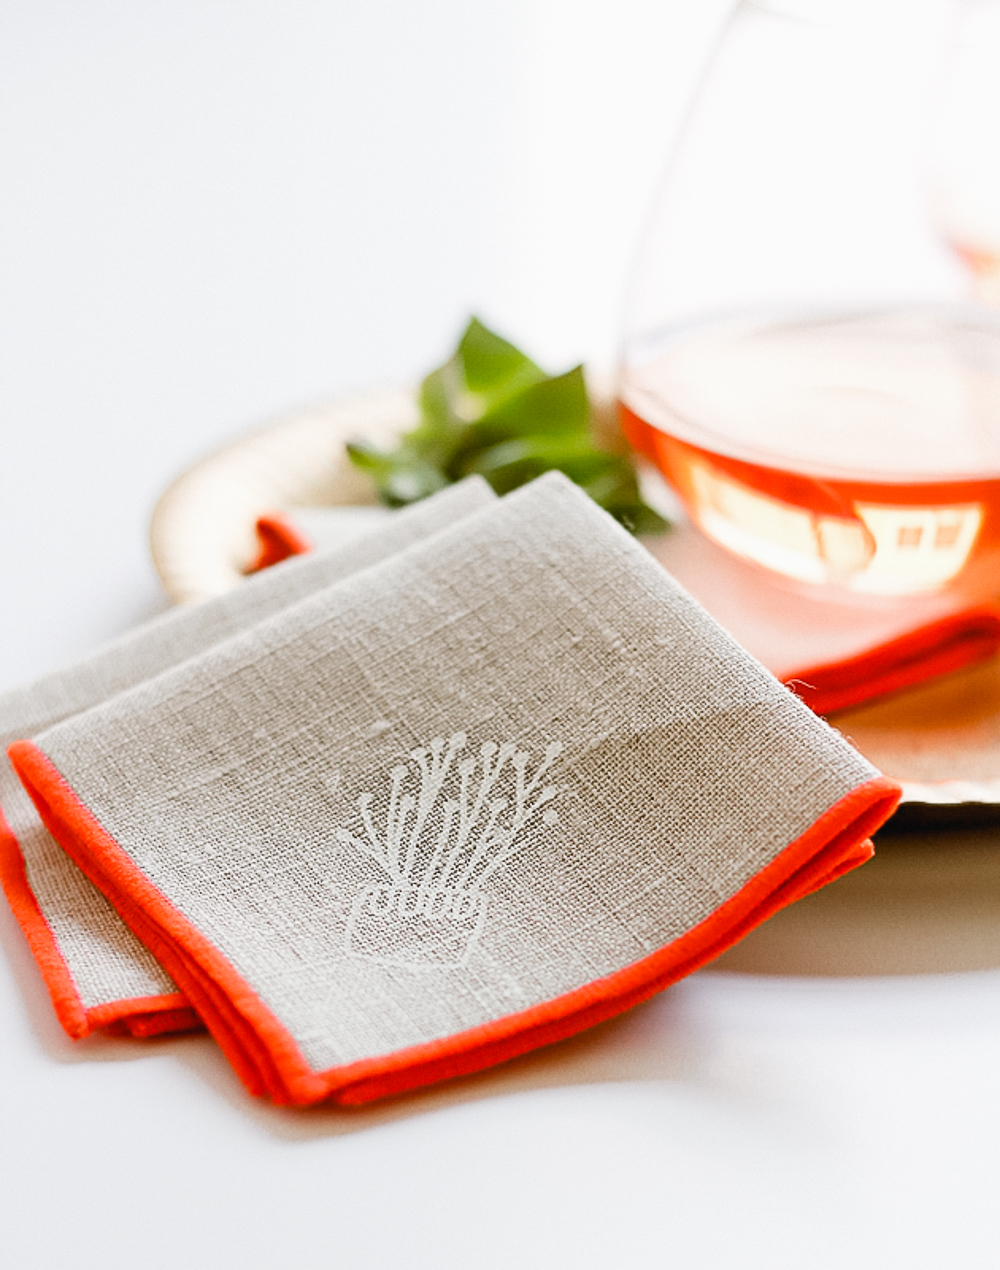 Cactus_cocktail_Napkins_Very_Sarie (6 of 23).jpg